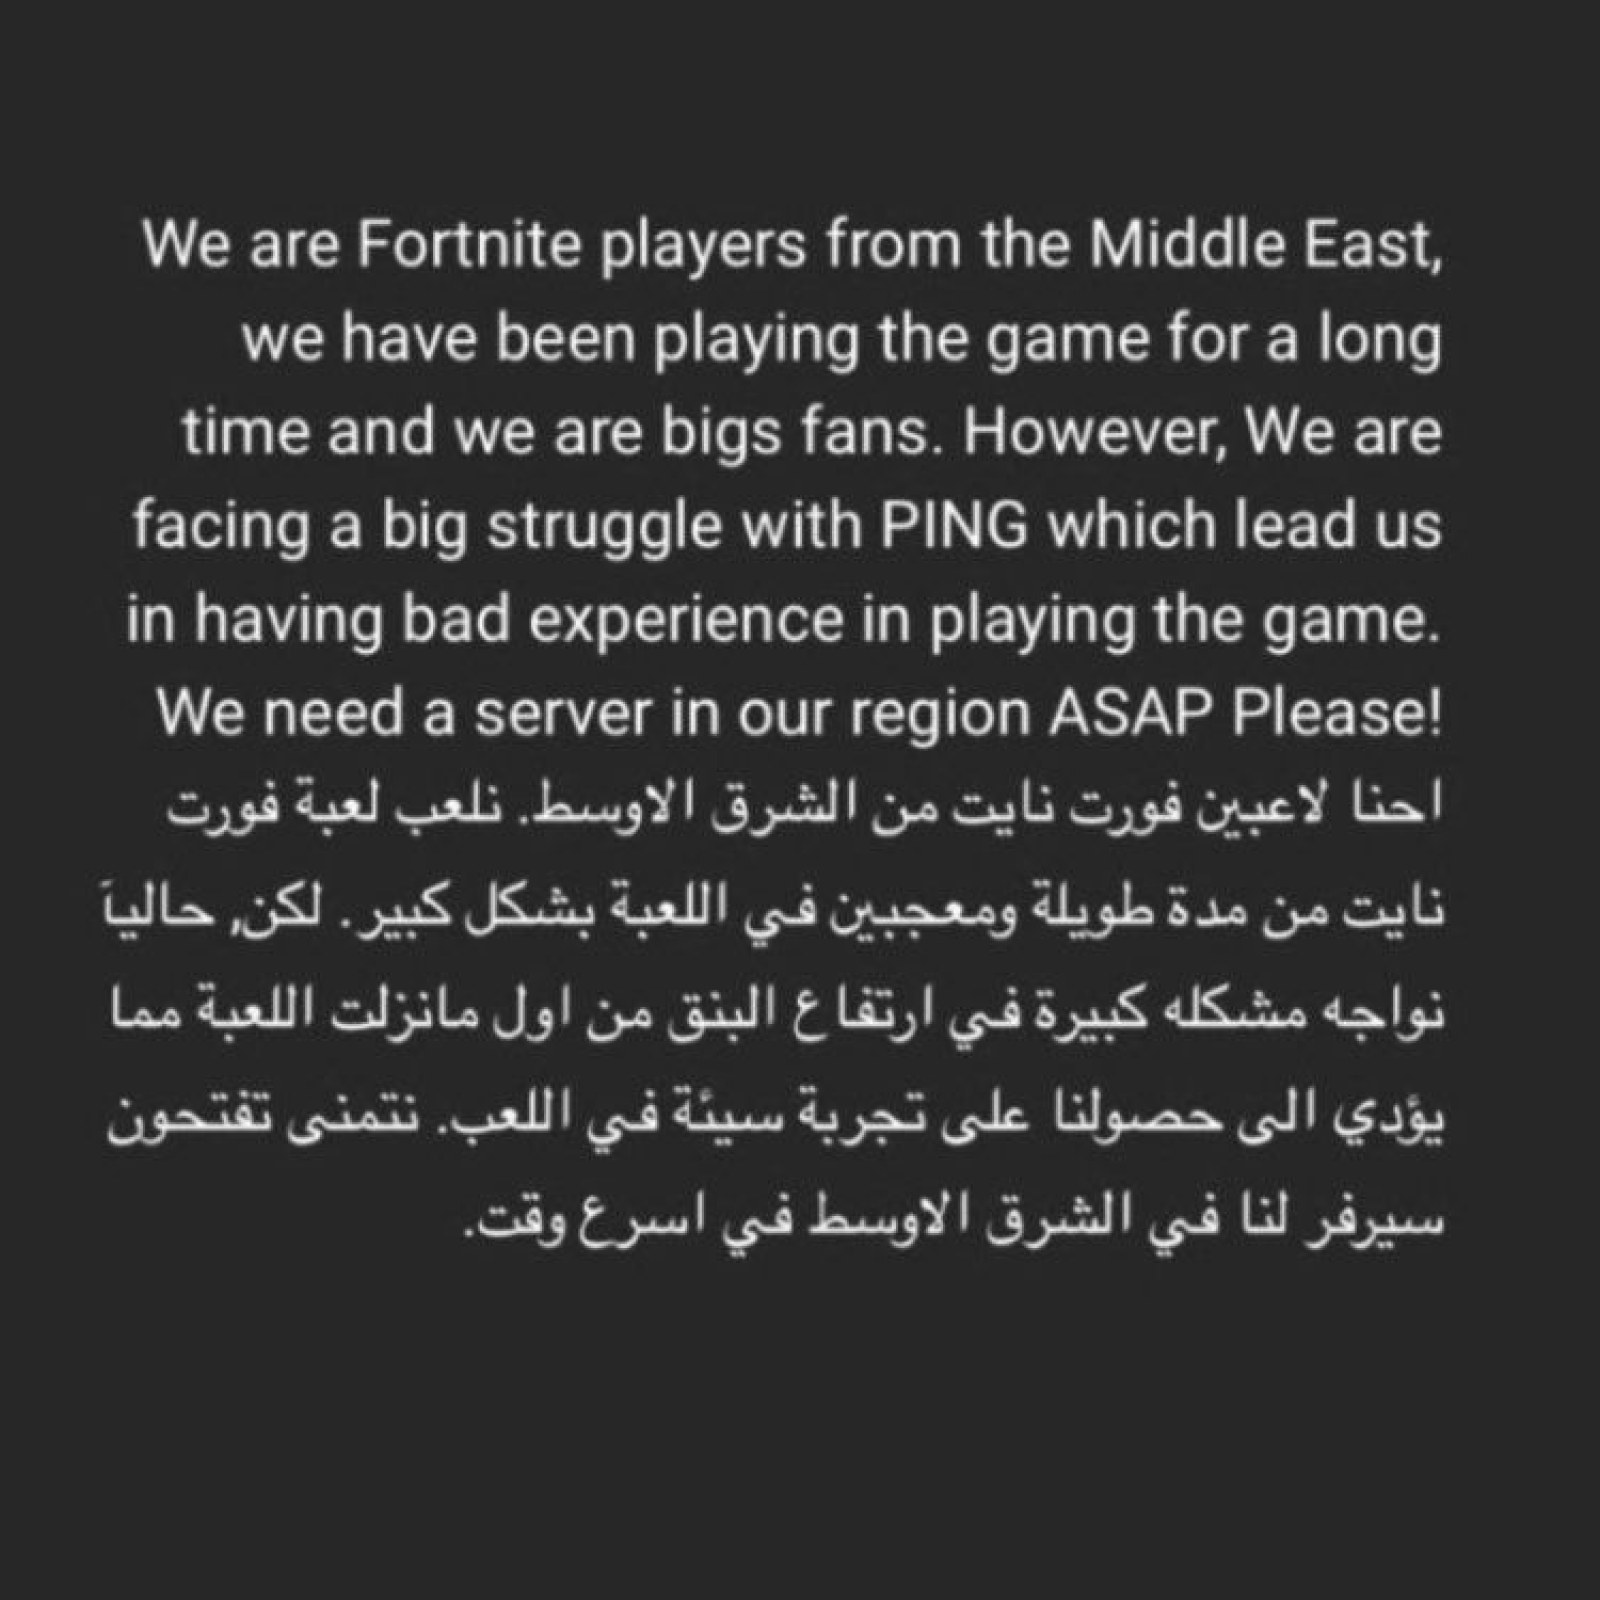 Middle East 'Fortnite' Players Asking for Server for Stable Ping